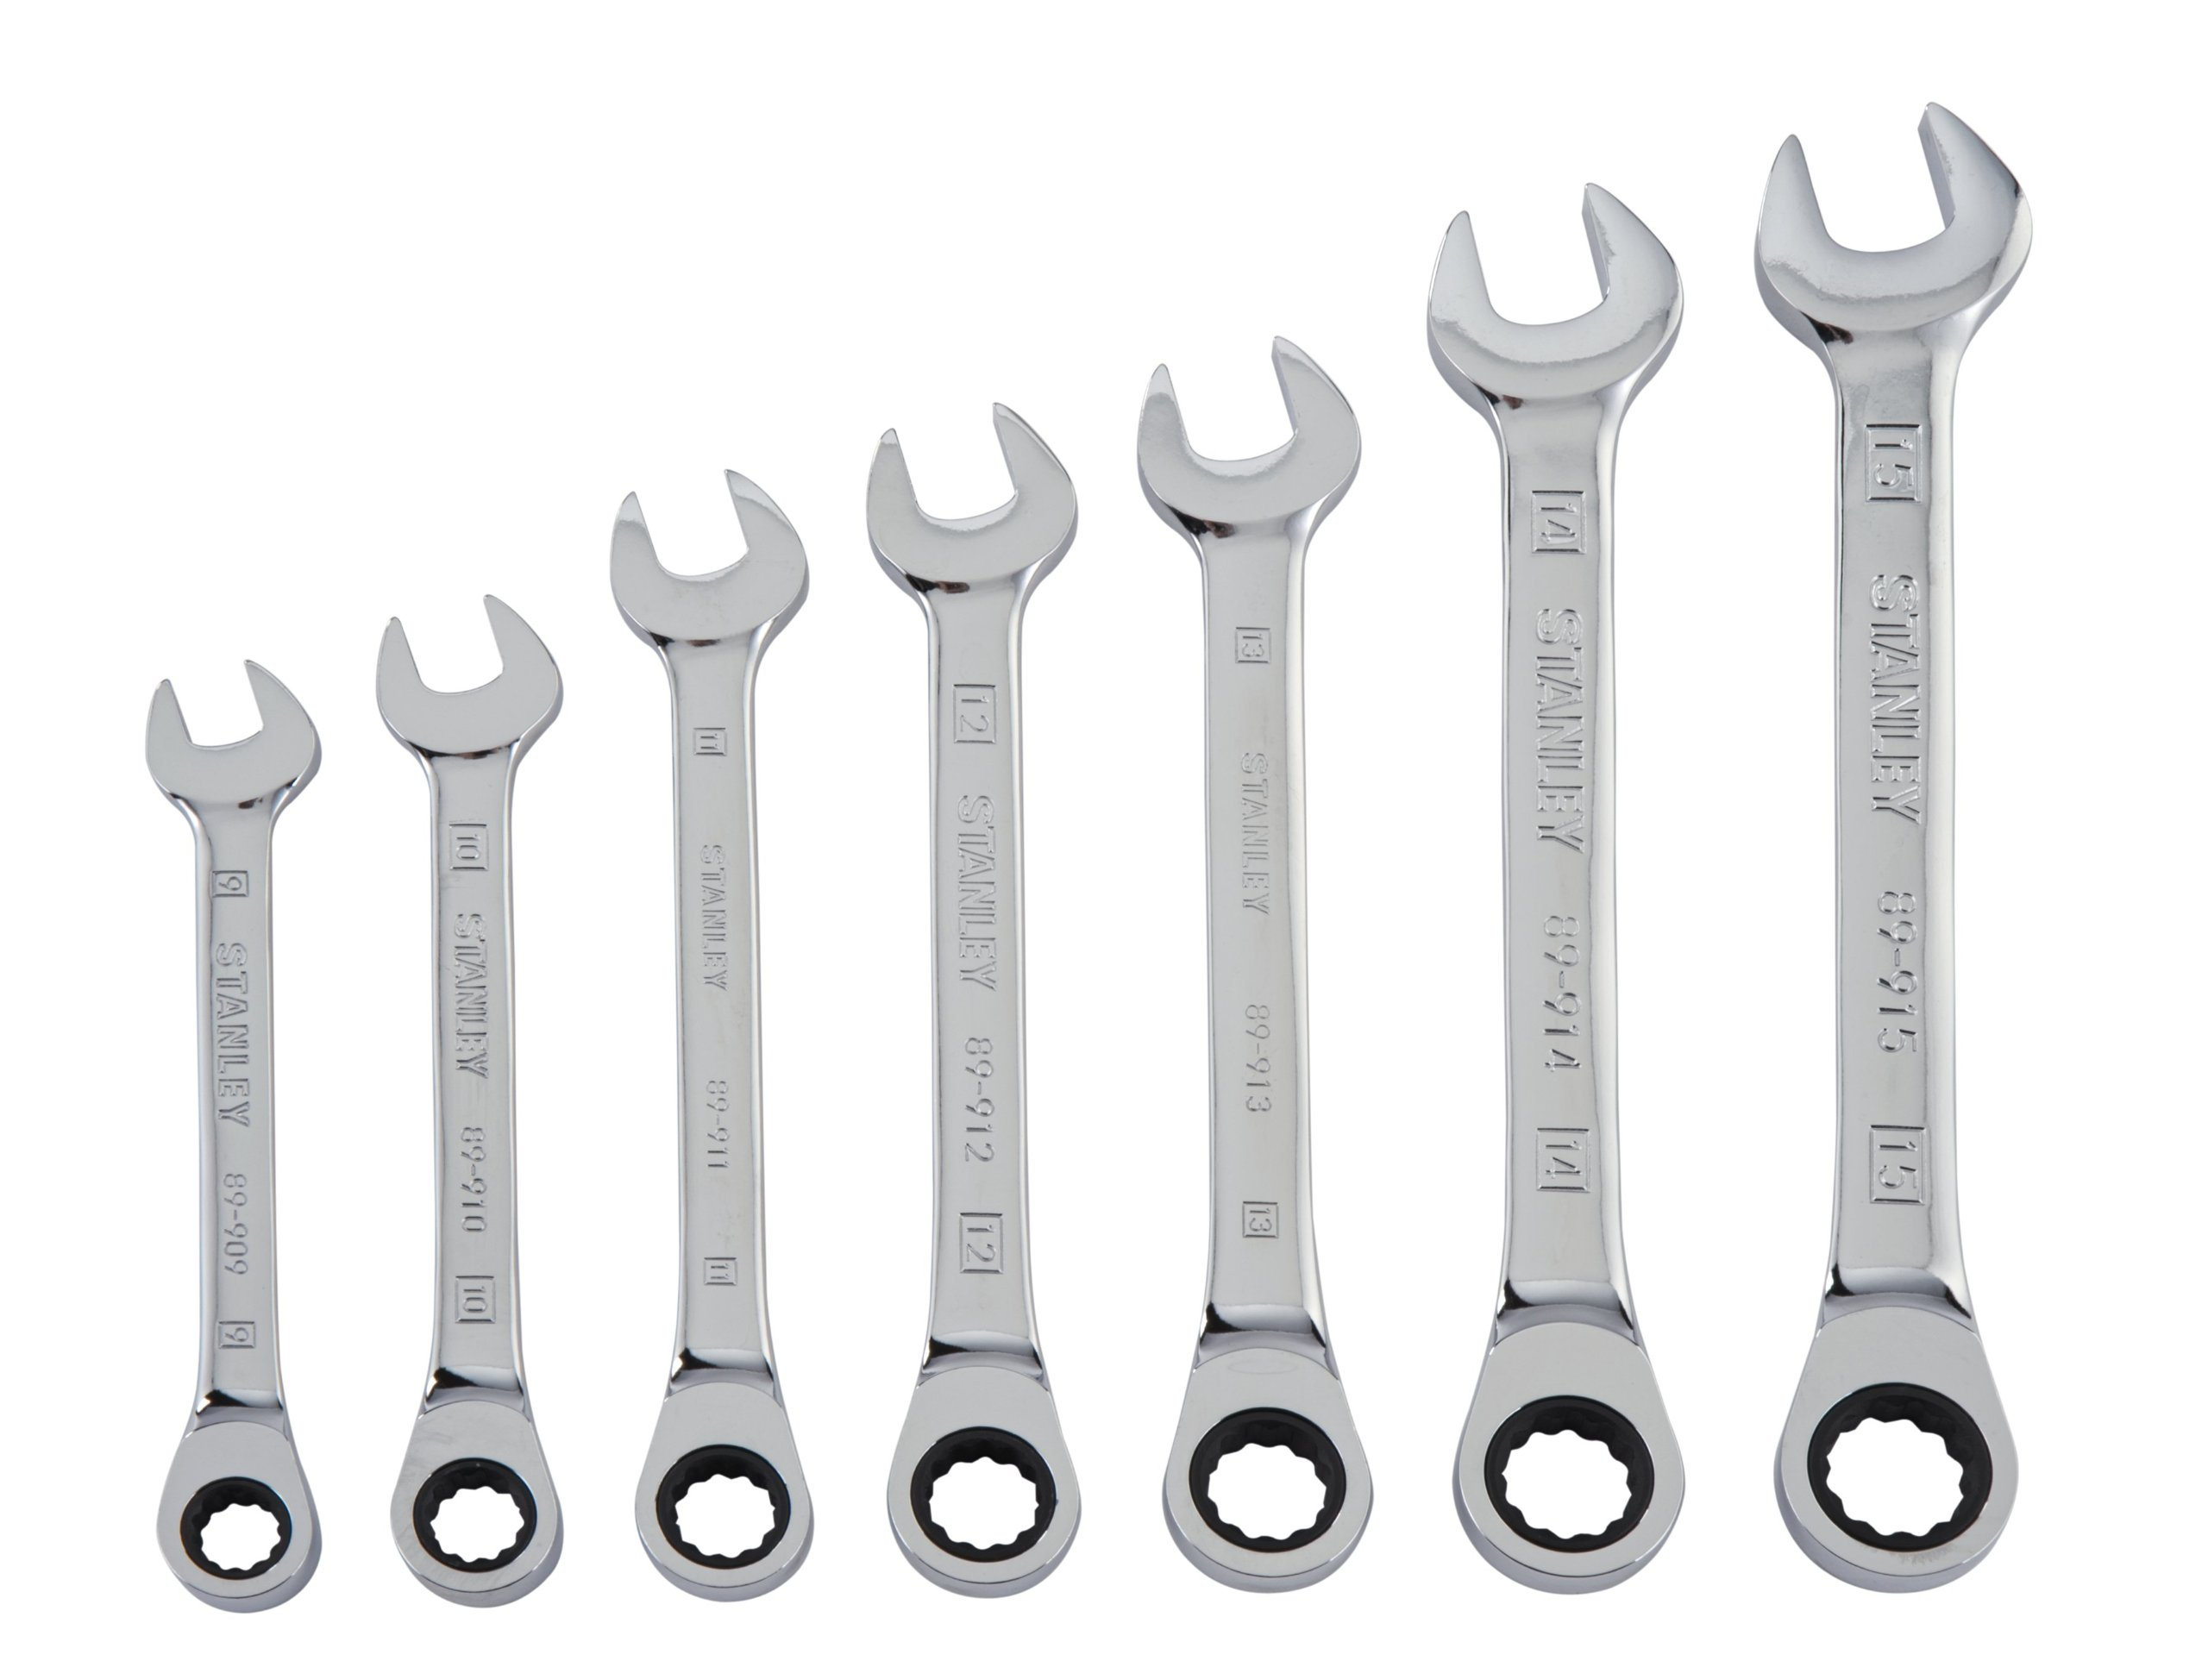 Stanley 94-543W 7-Piece Ratcheting Wrench Set, Metric